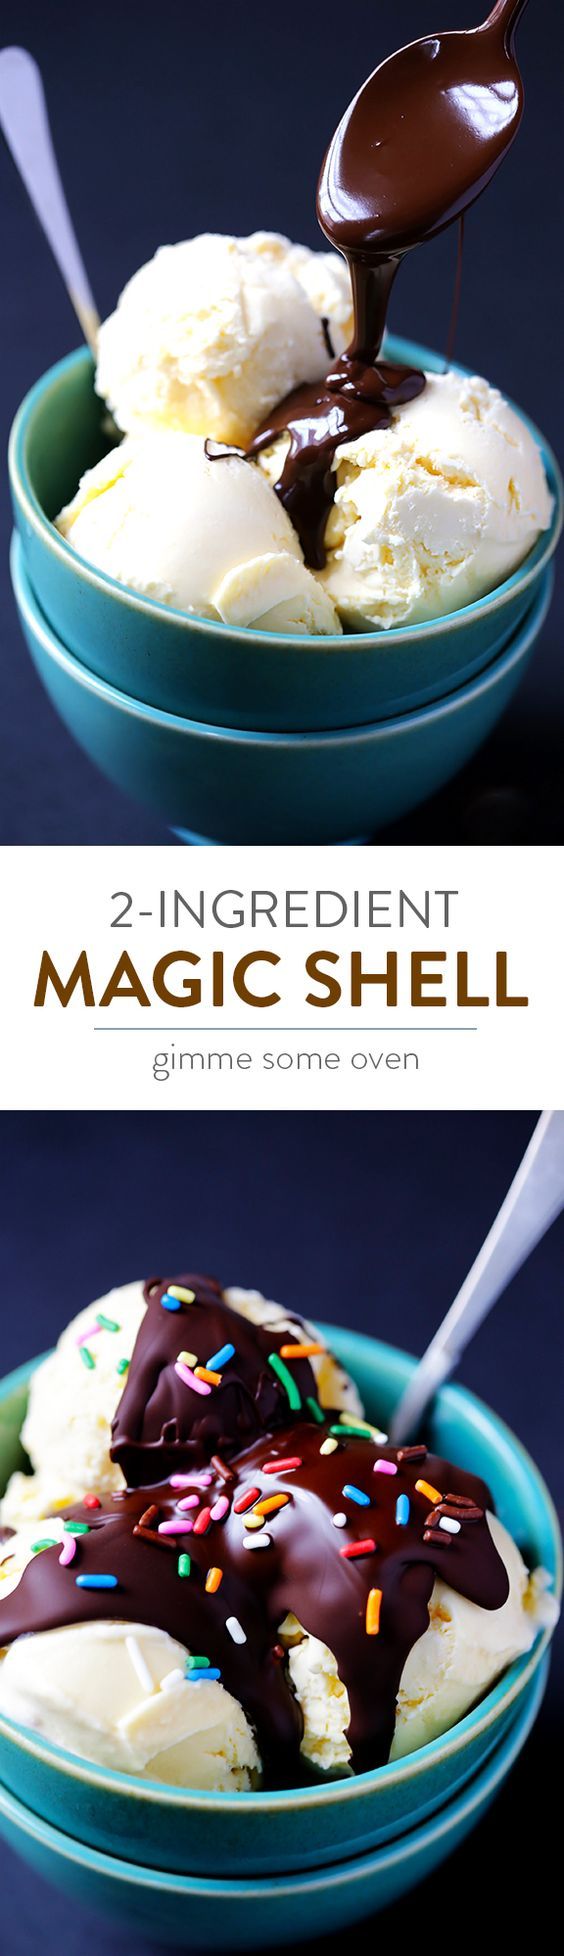 Pintesting Homemade Magic Shell